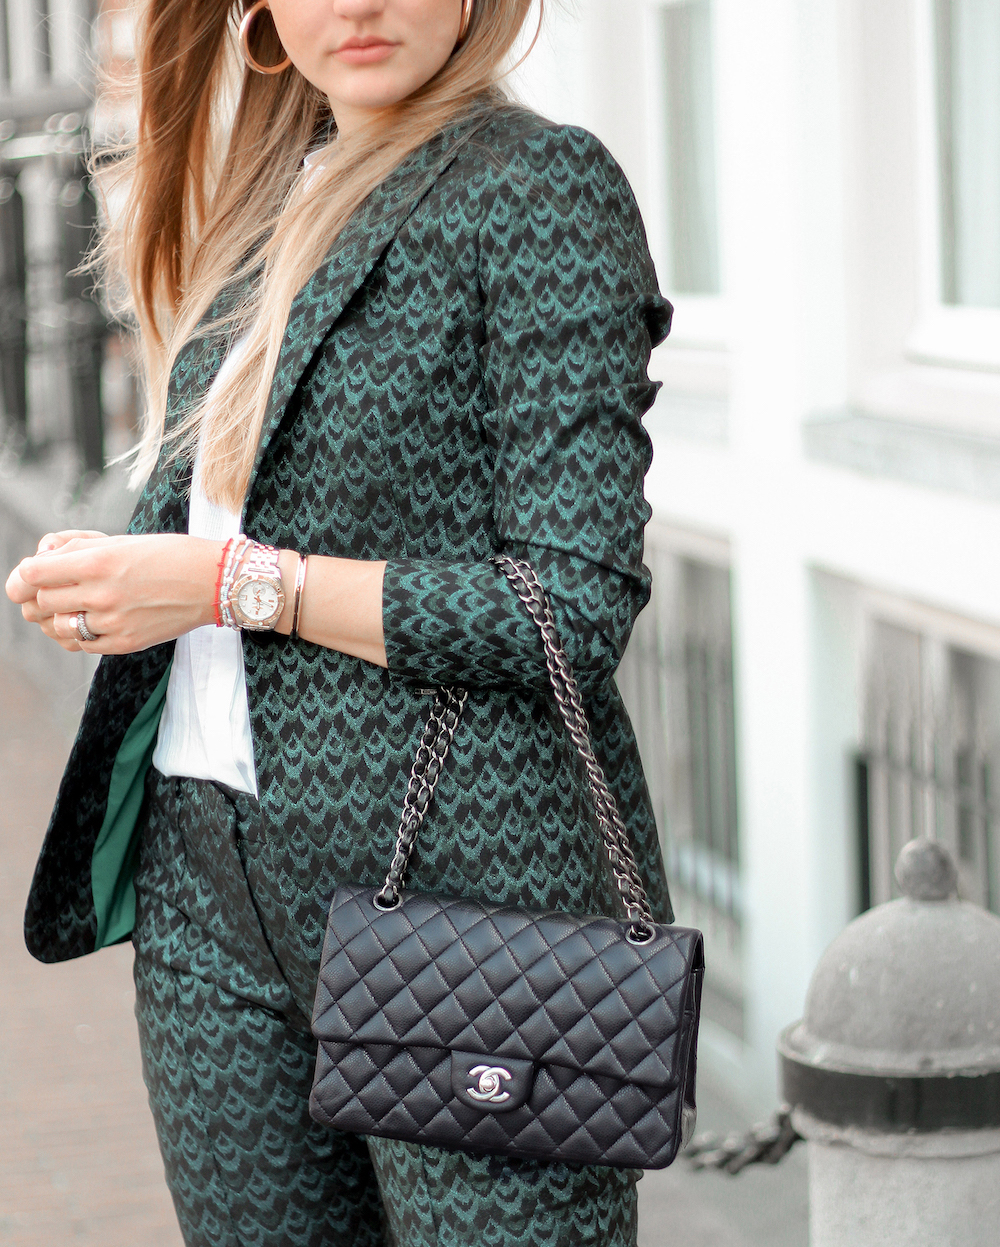 floortjeloves, comma, comma fashion, jacquard suit, the jacquard suit, Chanel, chanel classic, chanel bag, style italy